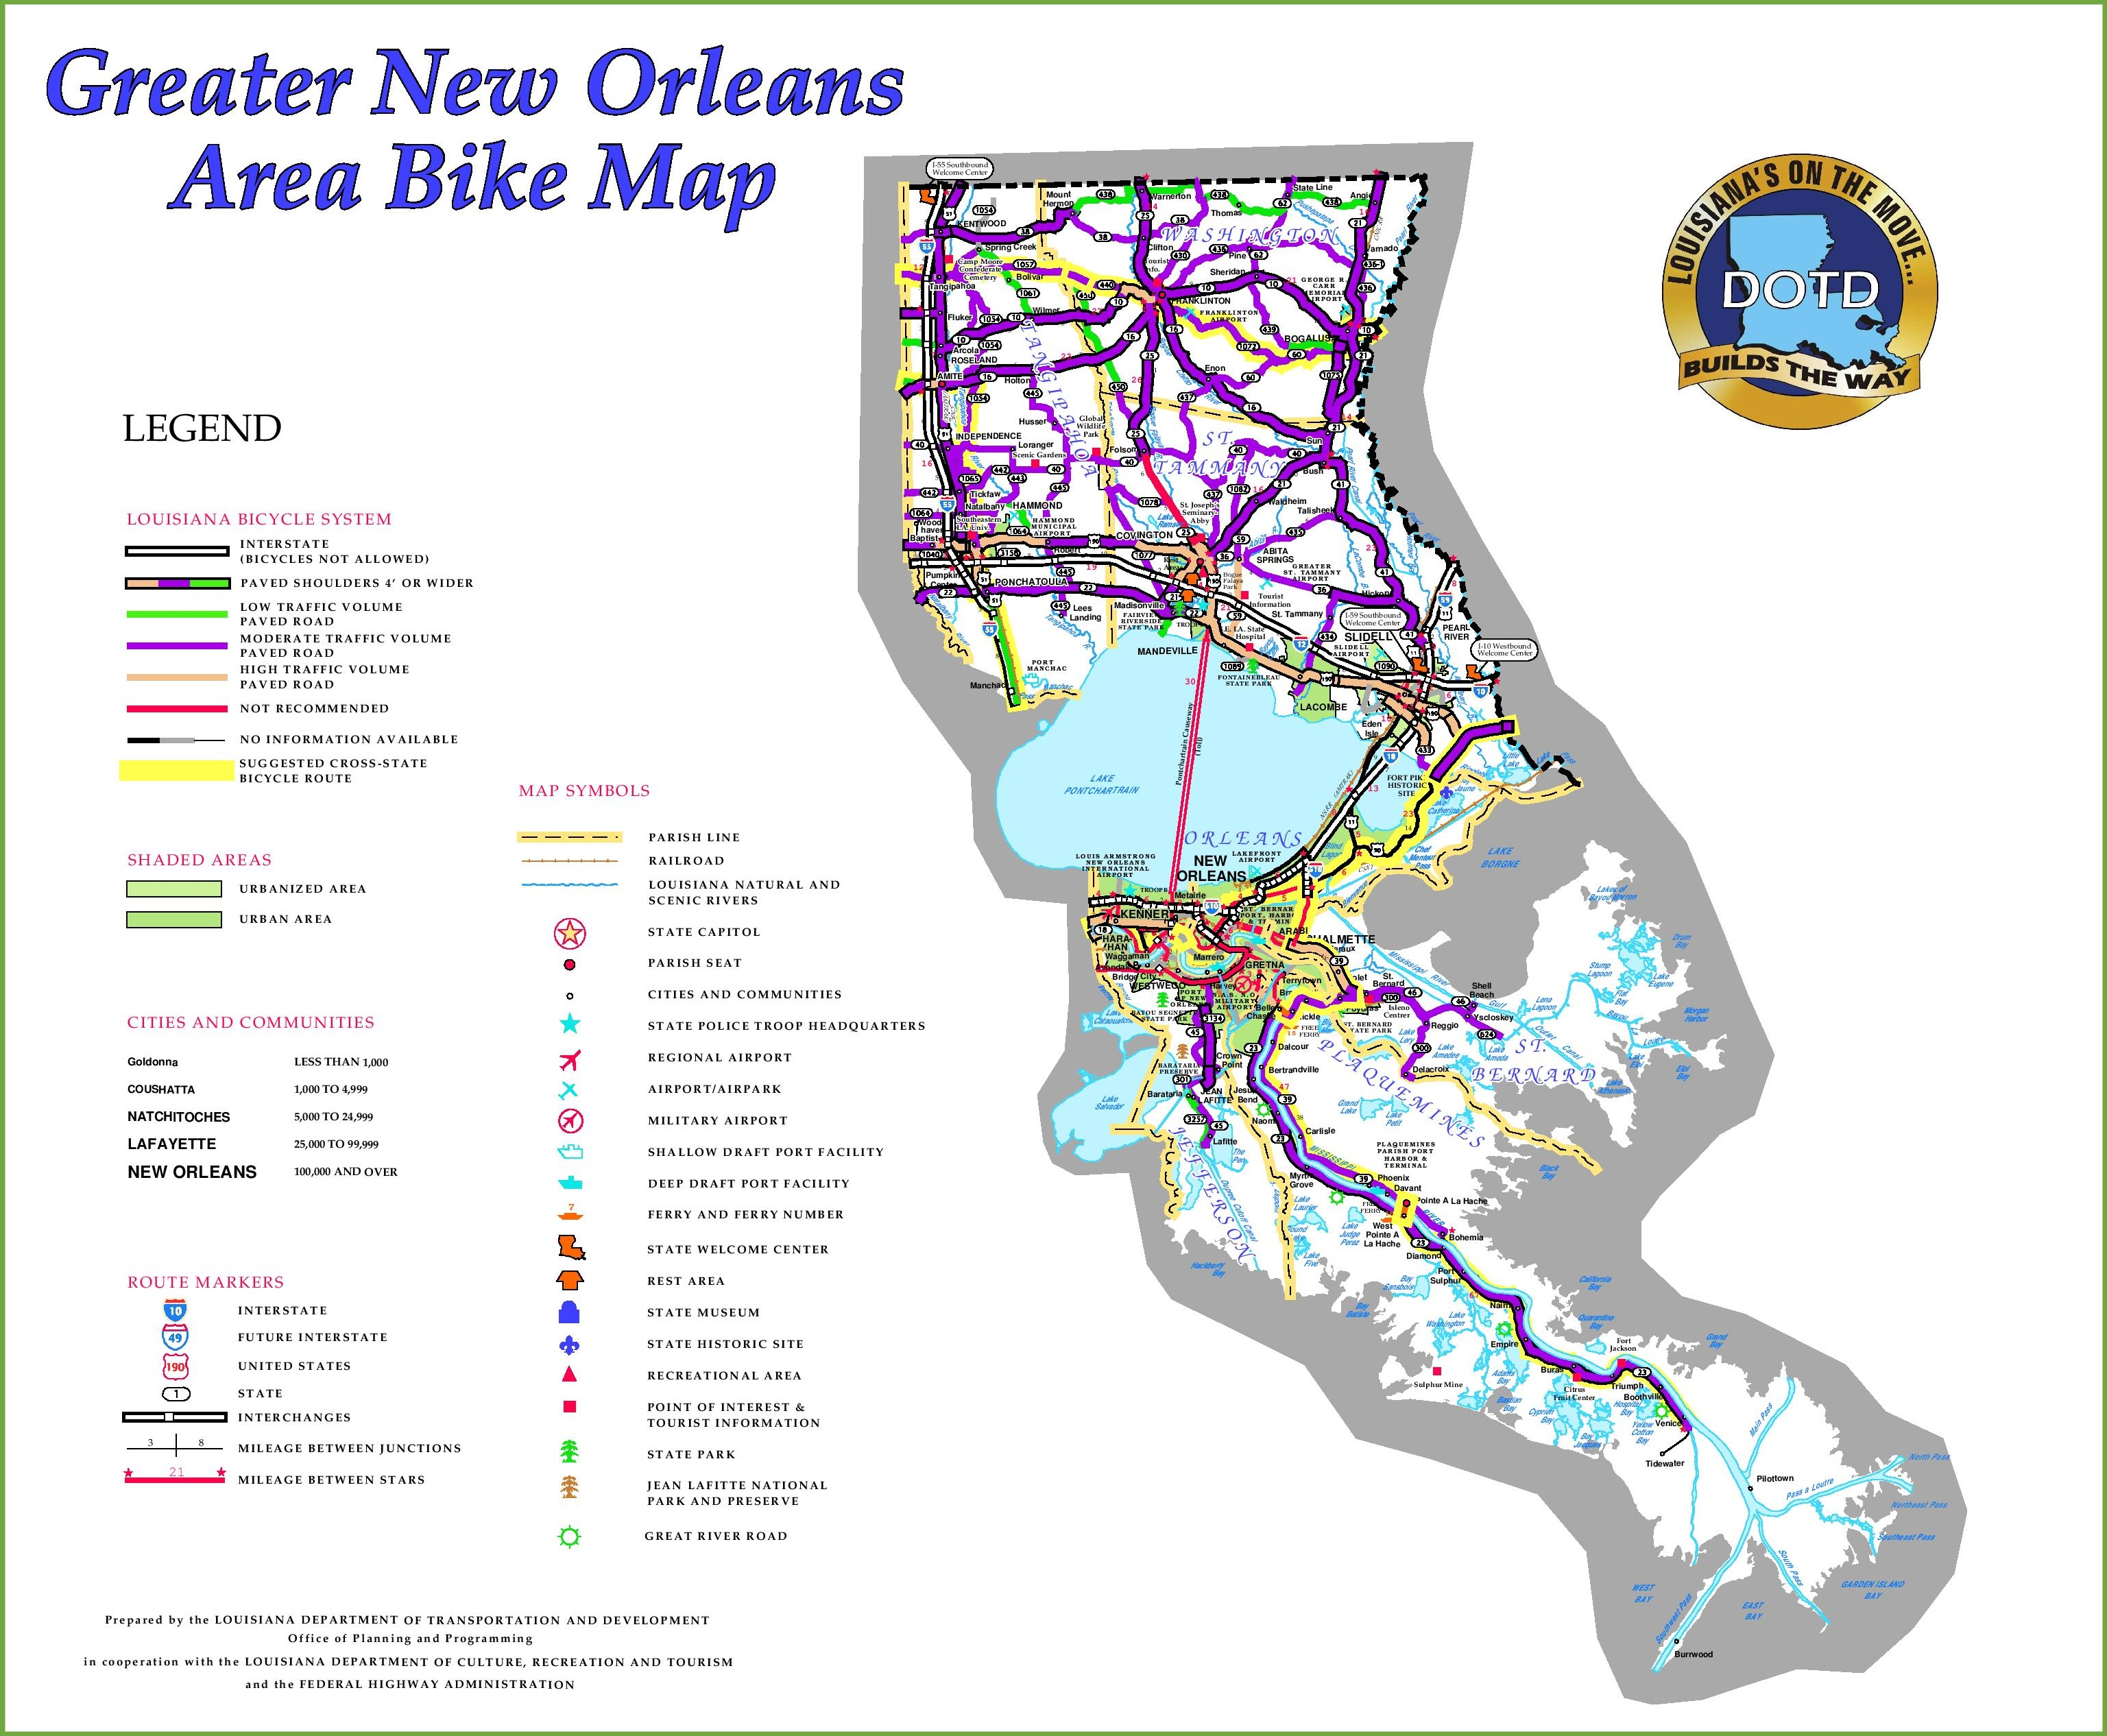 New Orleans area bike map